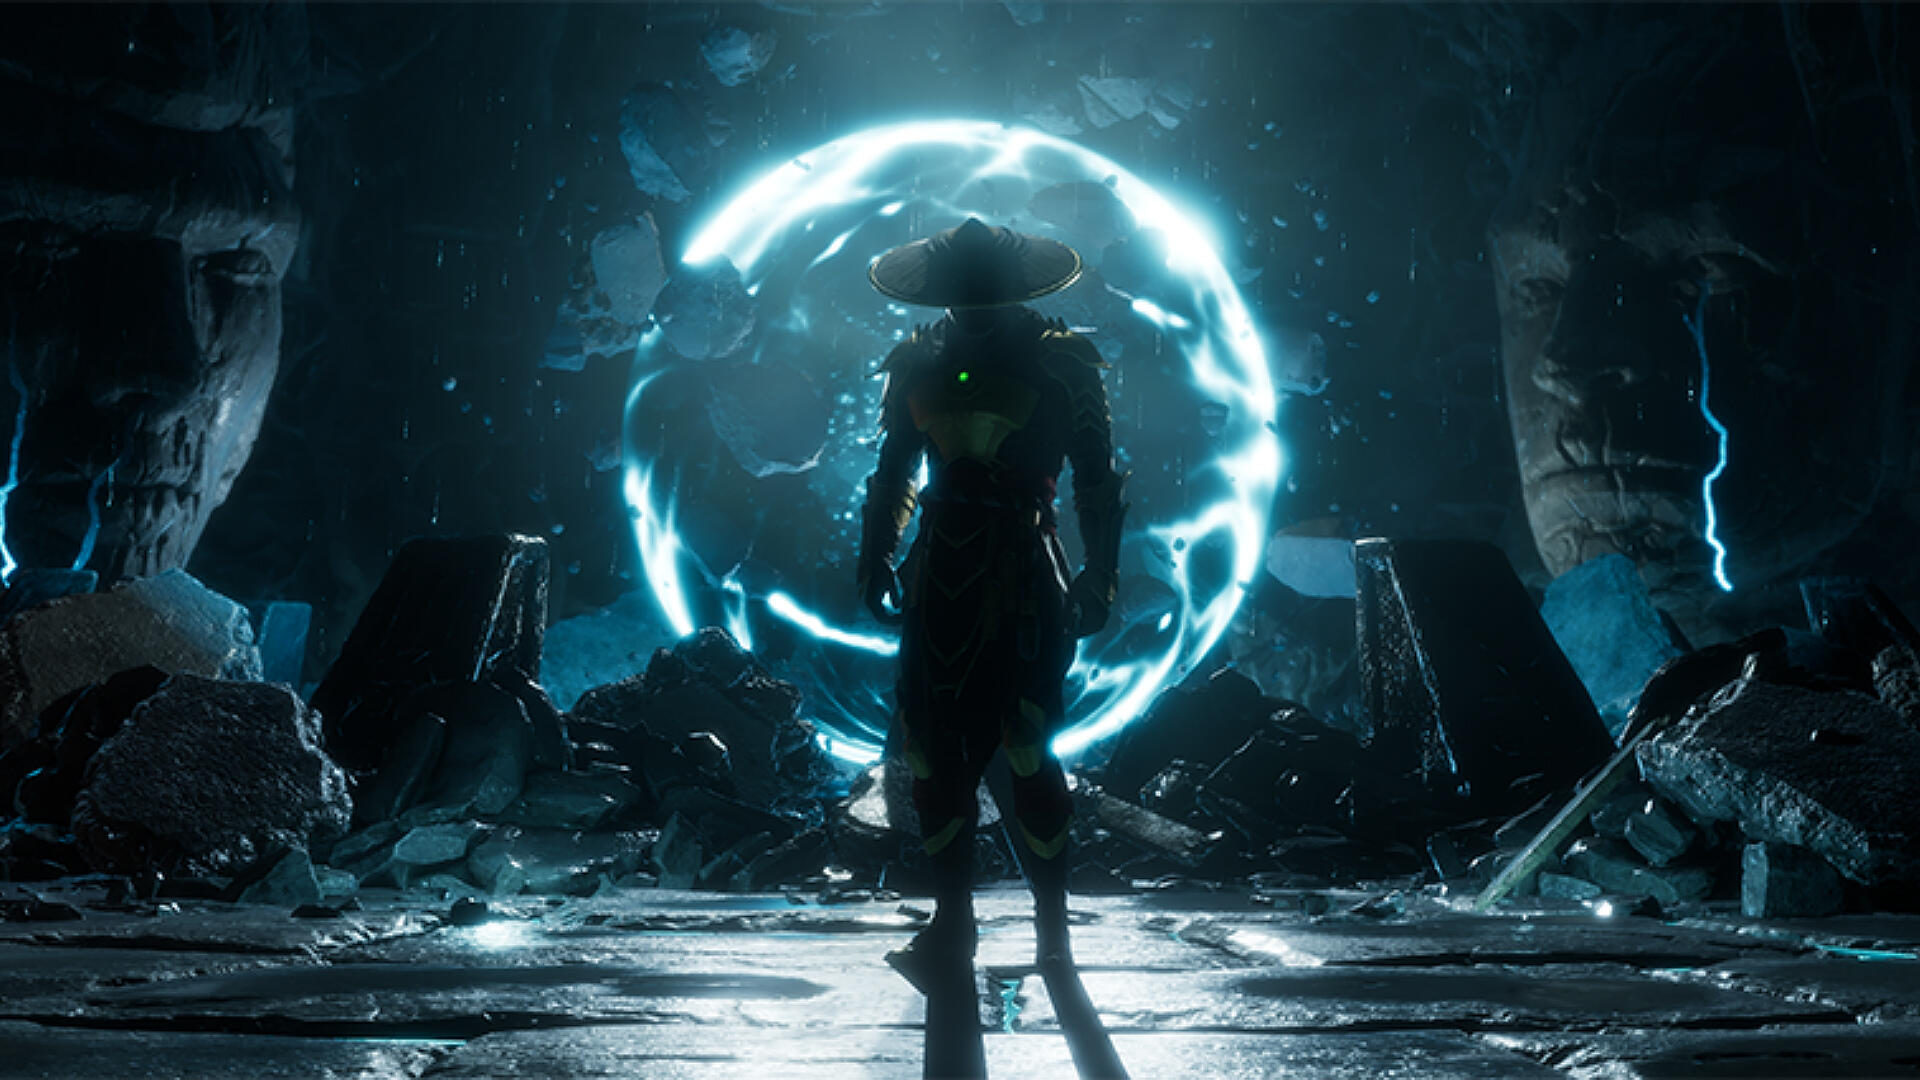 Mortal Kombat 11 Leak Points To More Guest Characters as DLC